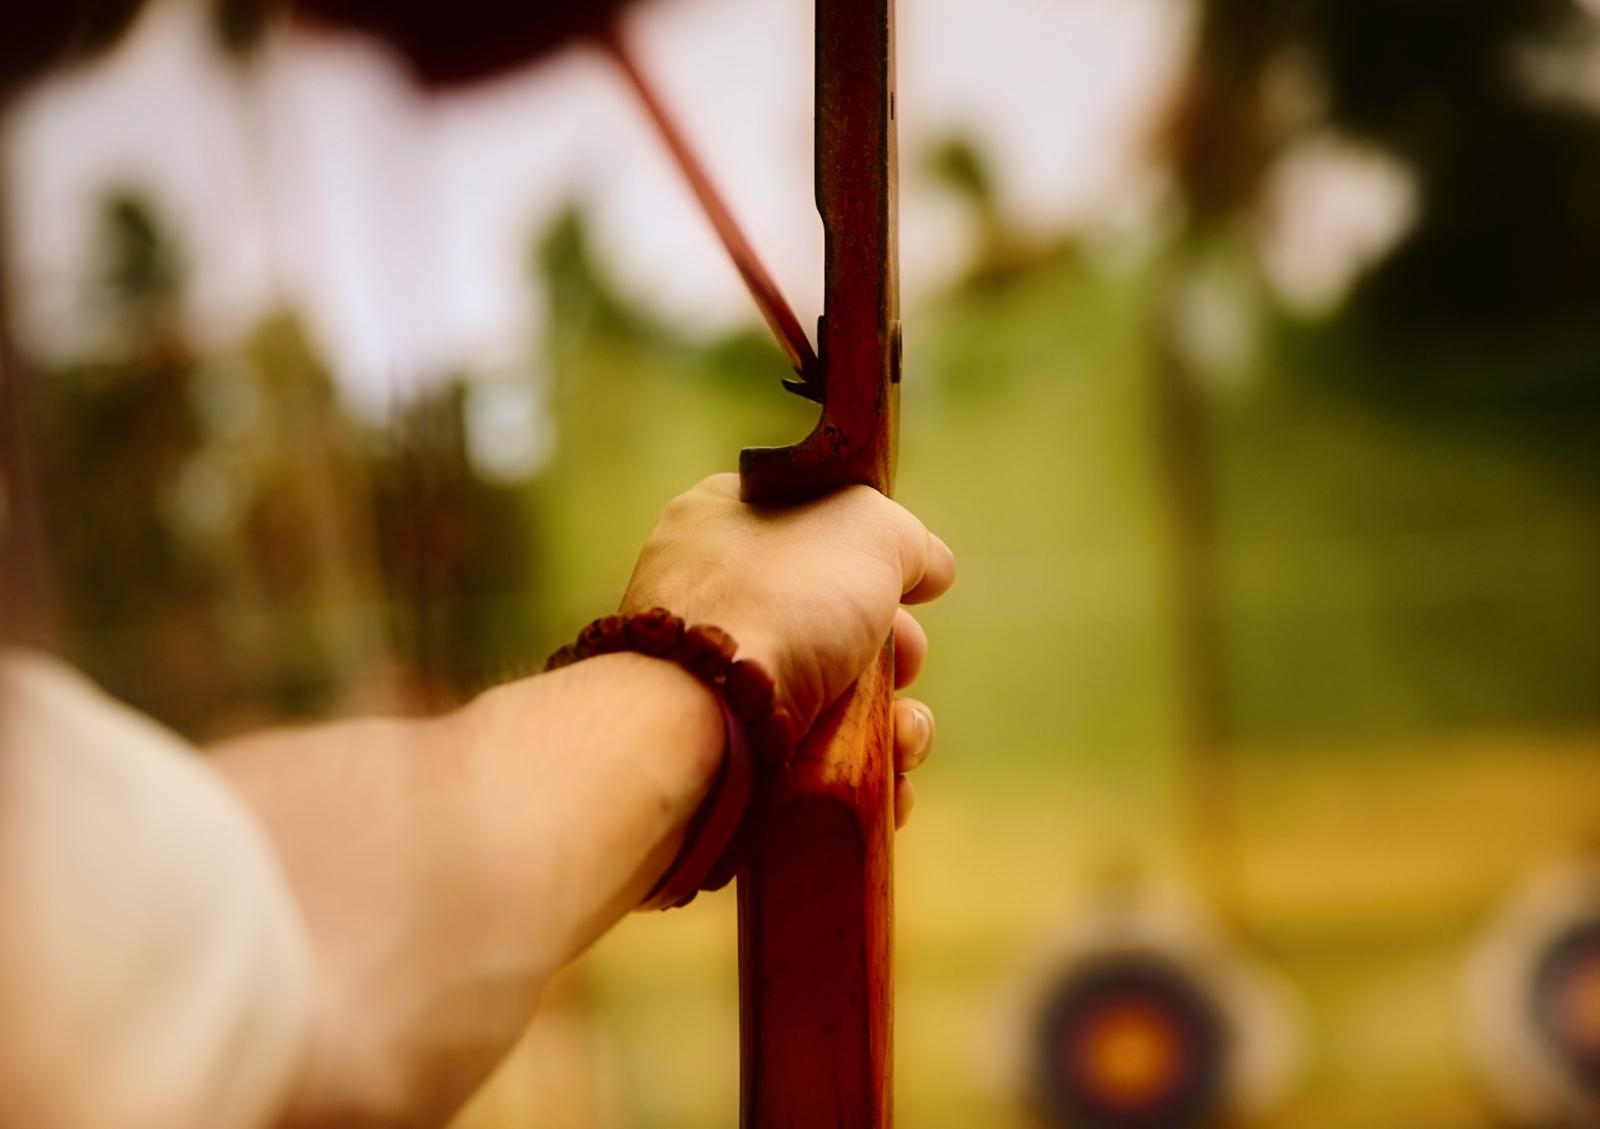 Archery wallpapers HD quality